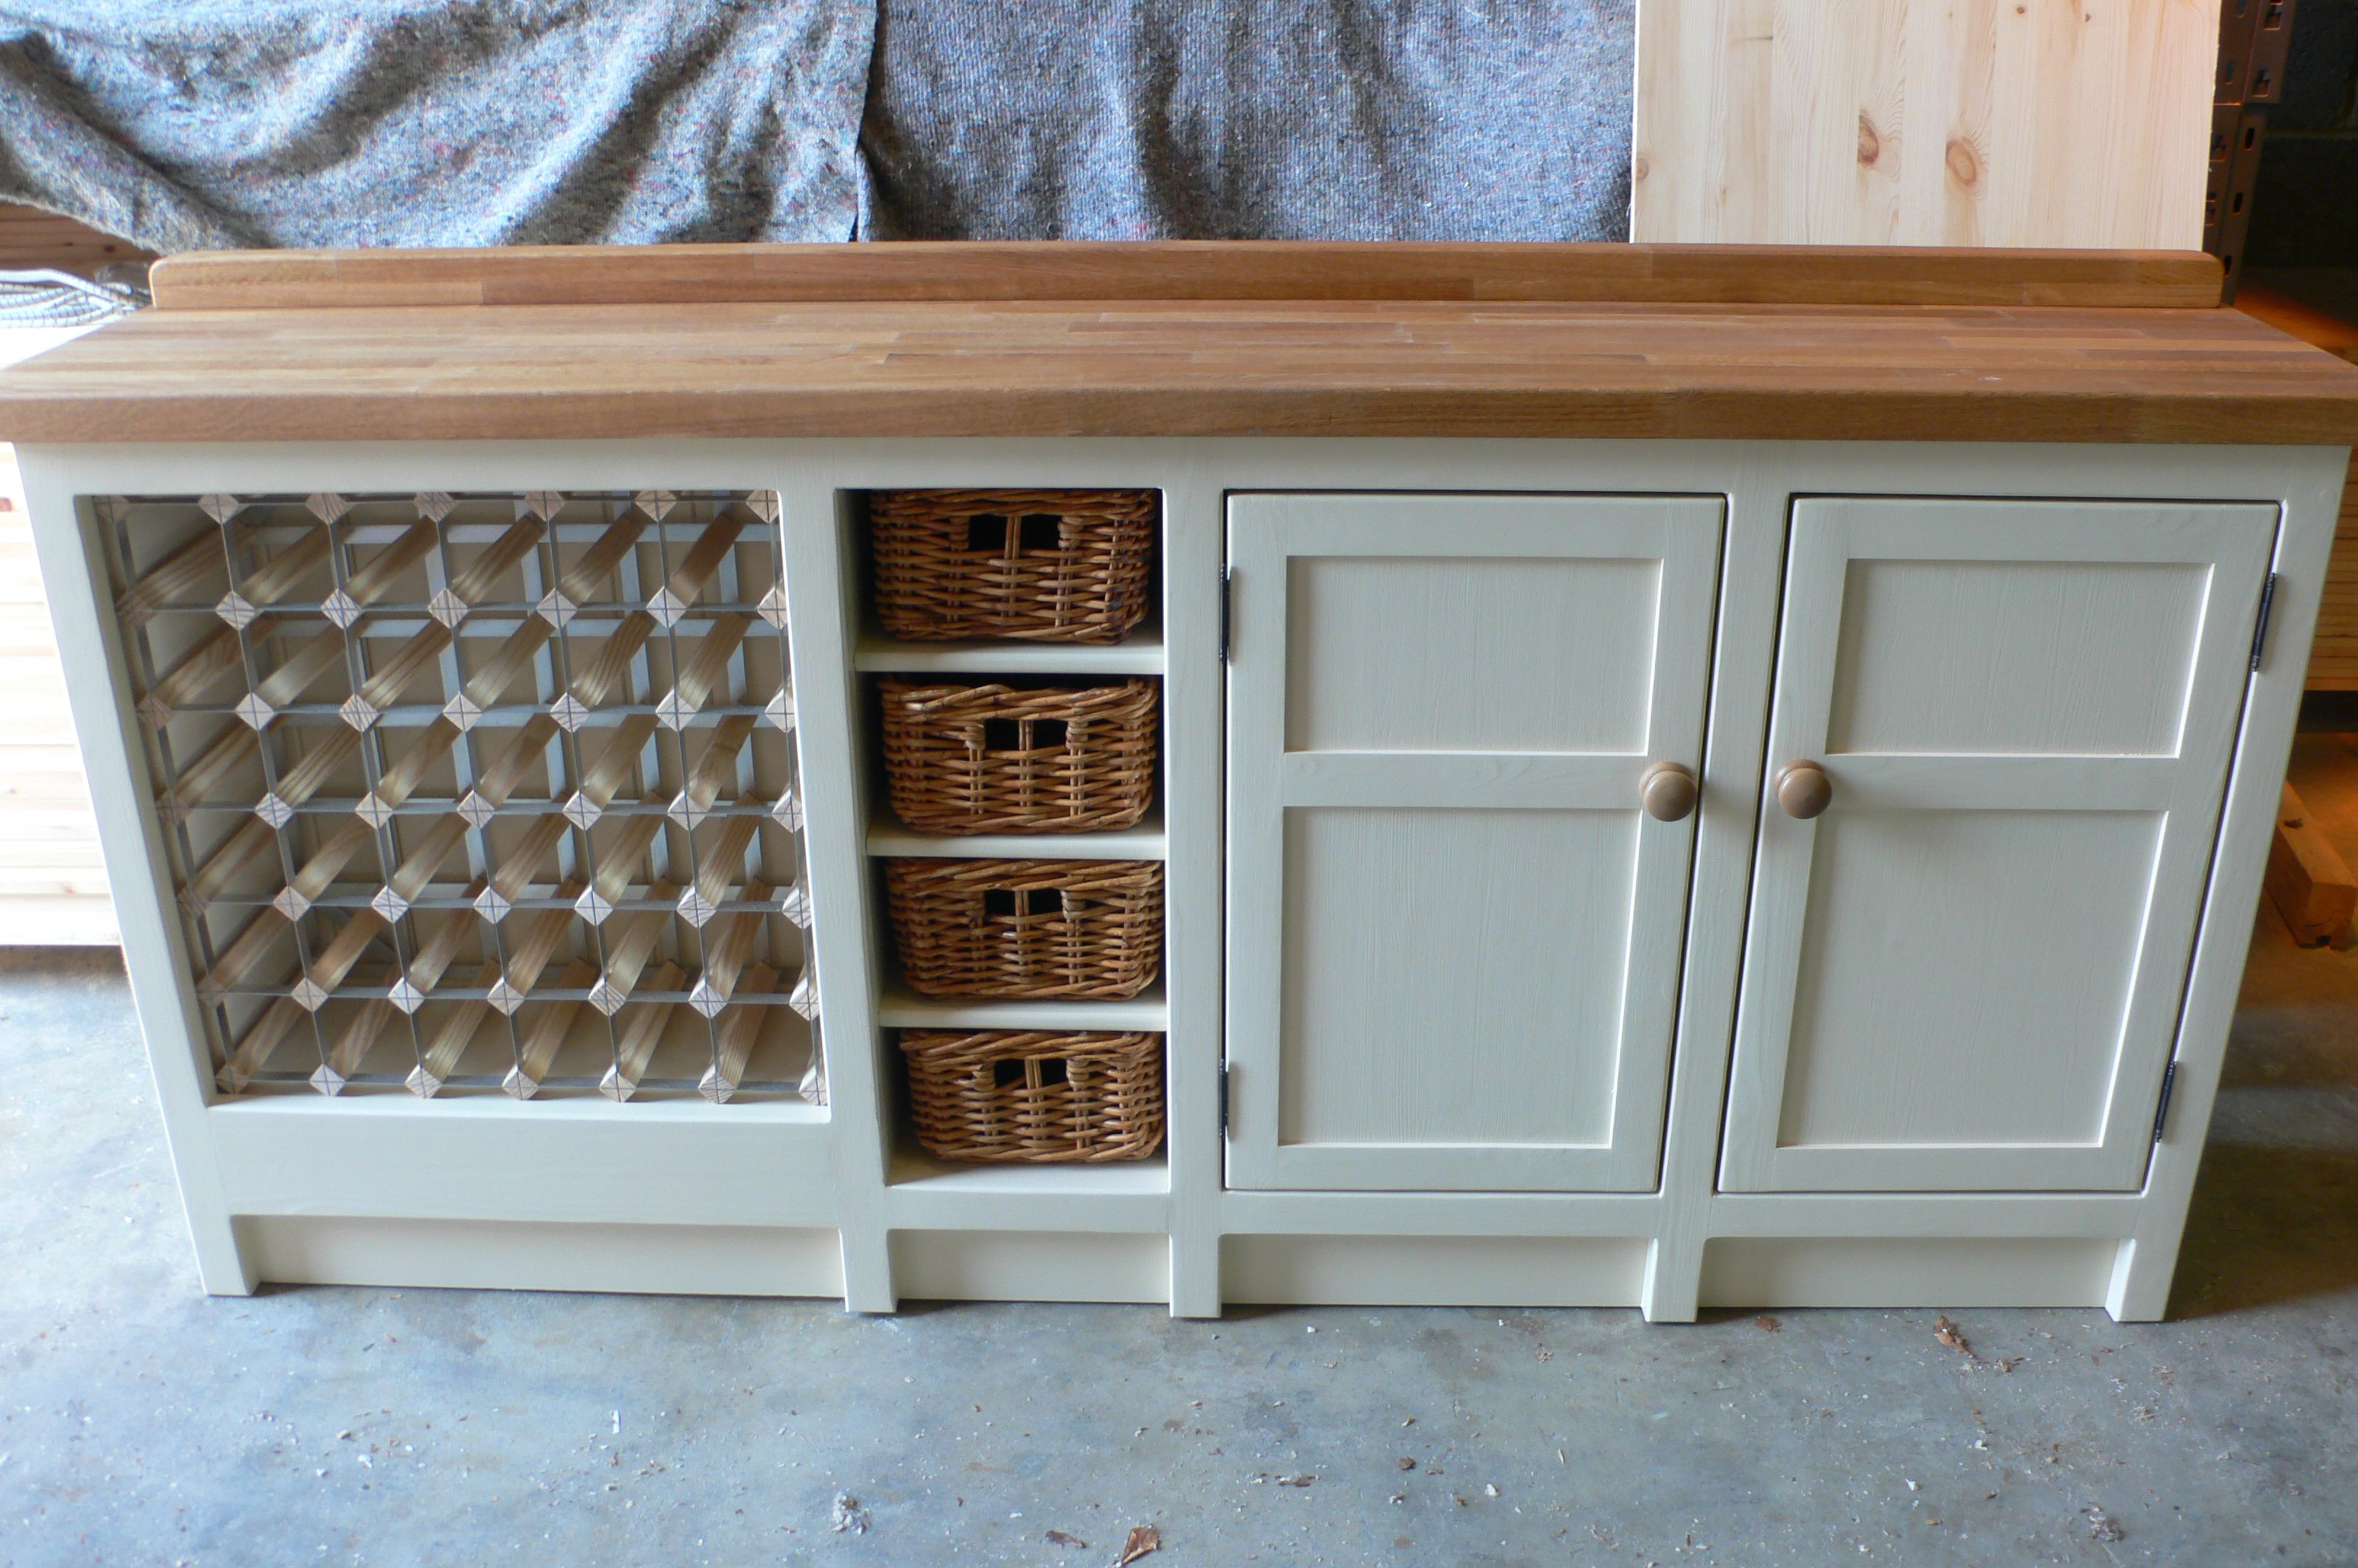 Freestanding Kitchen Unit With Basket And Wine Rack Features